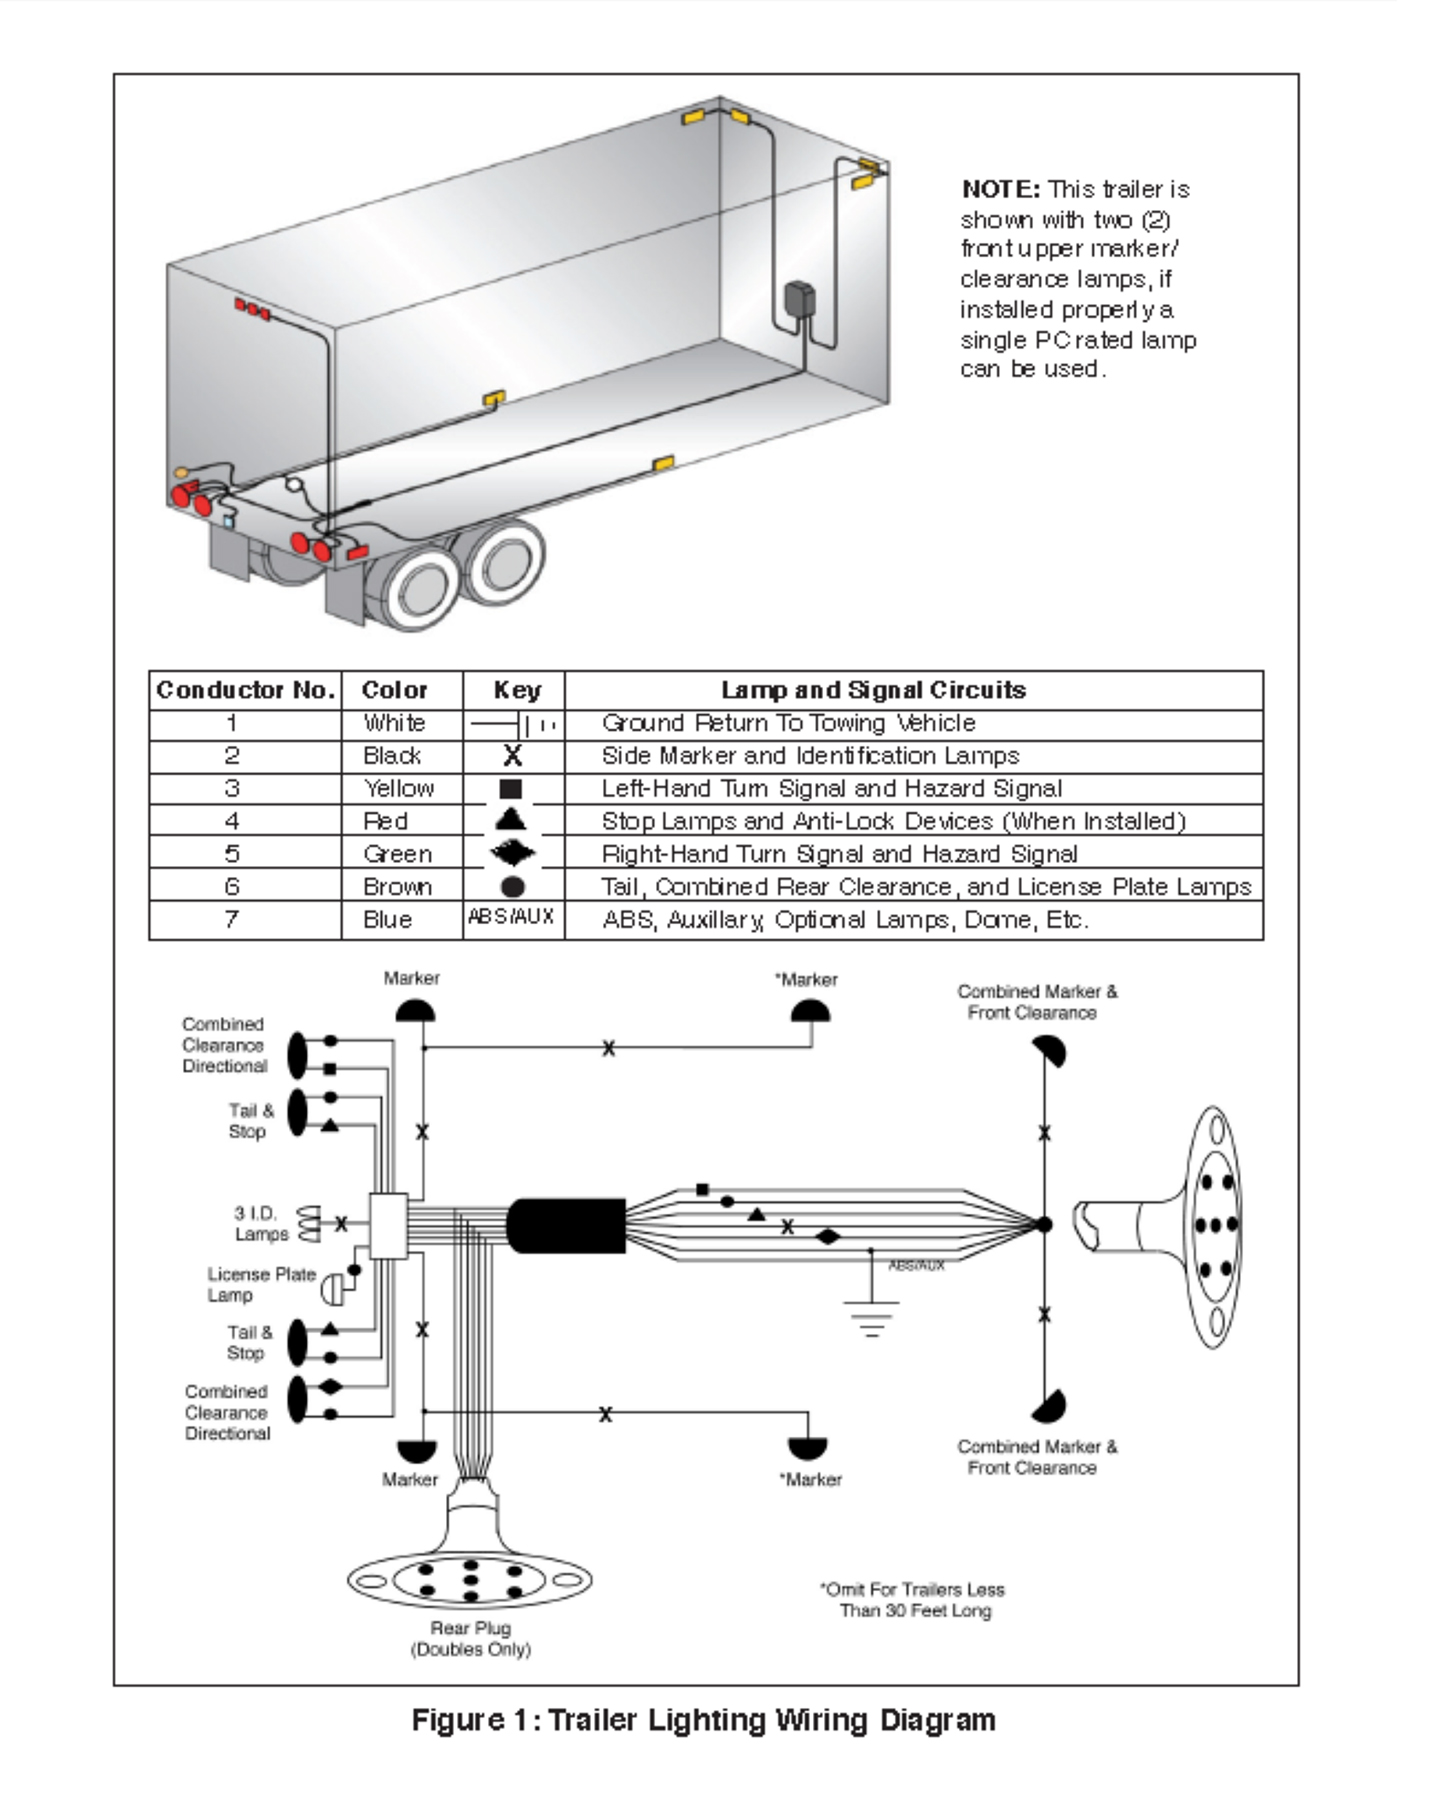 hight resolution of know about trailer lighting and wiring article truckinginfocom know about trailer lighting and wiring article truckinginfocom